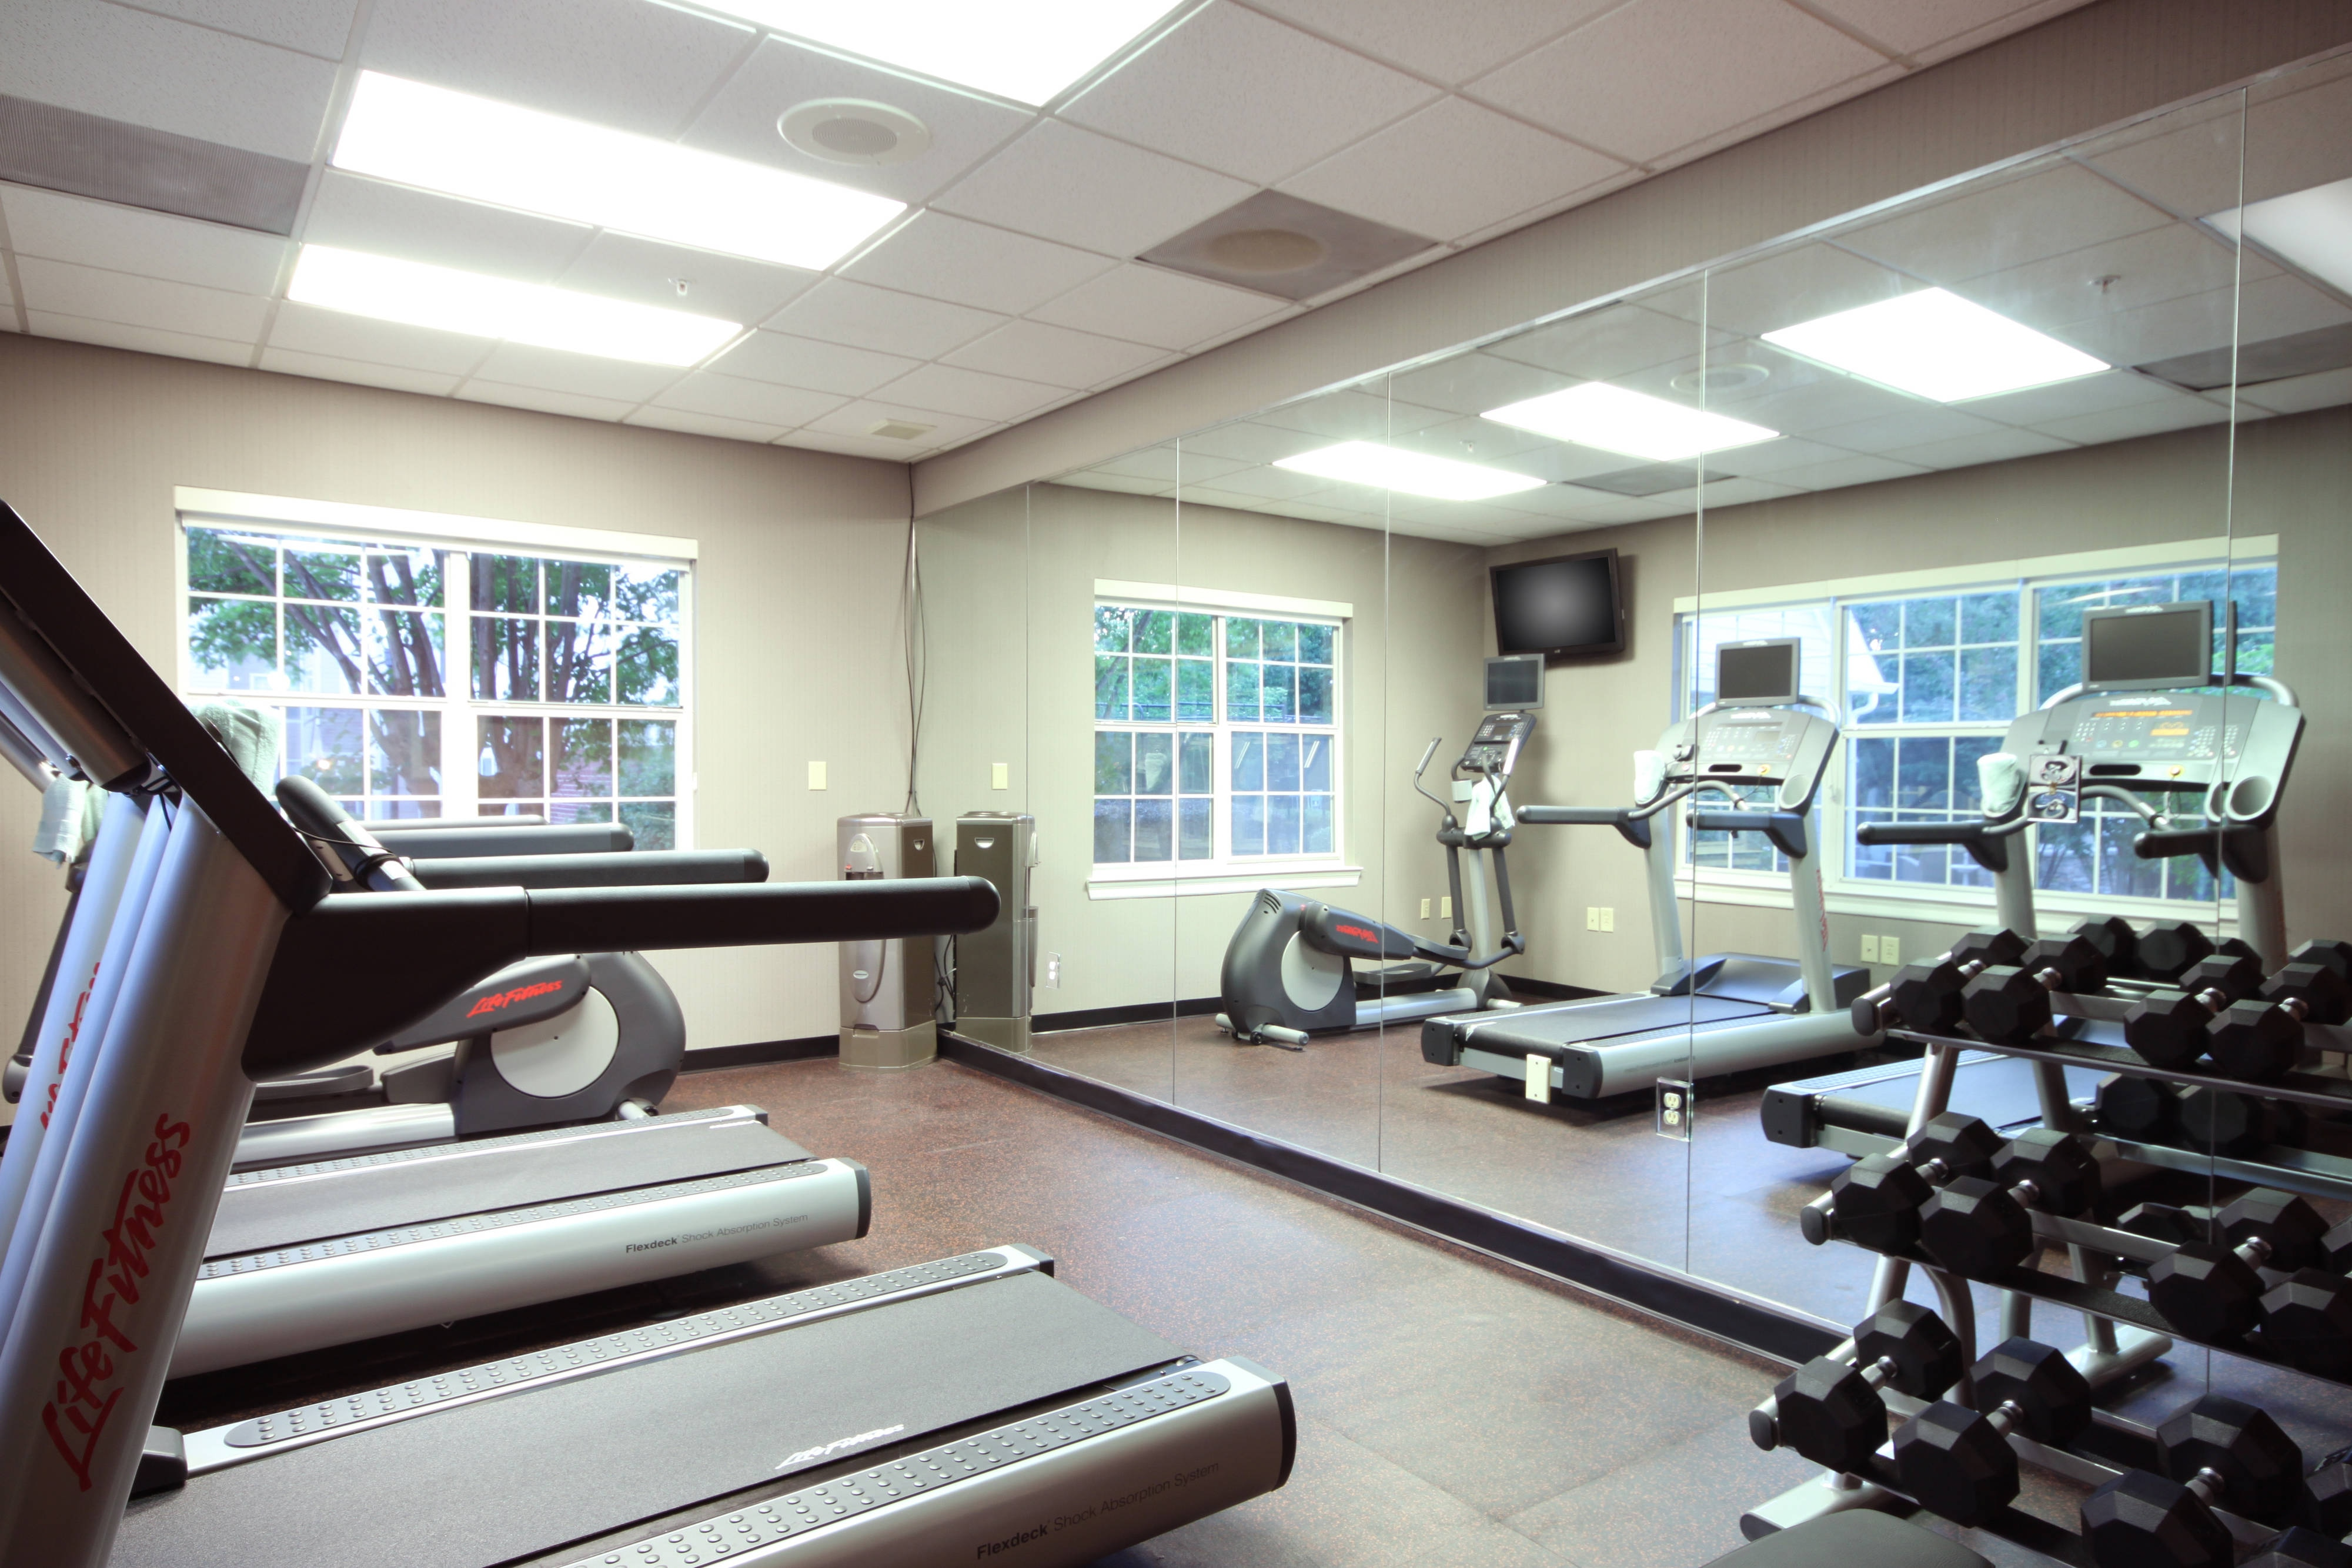 Atlanta Duluth hotel fitness center